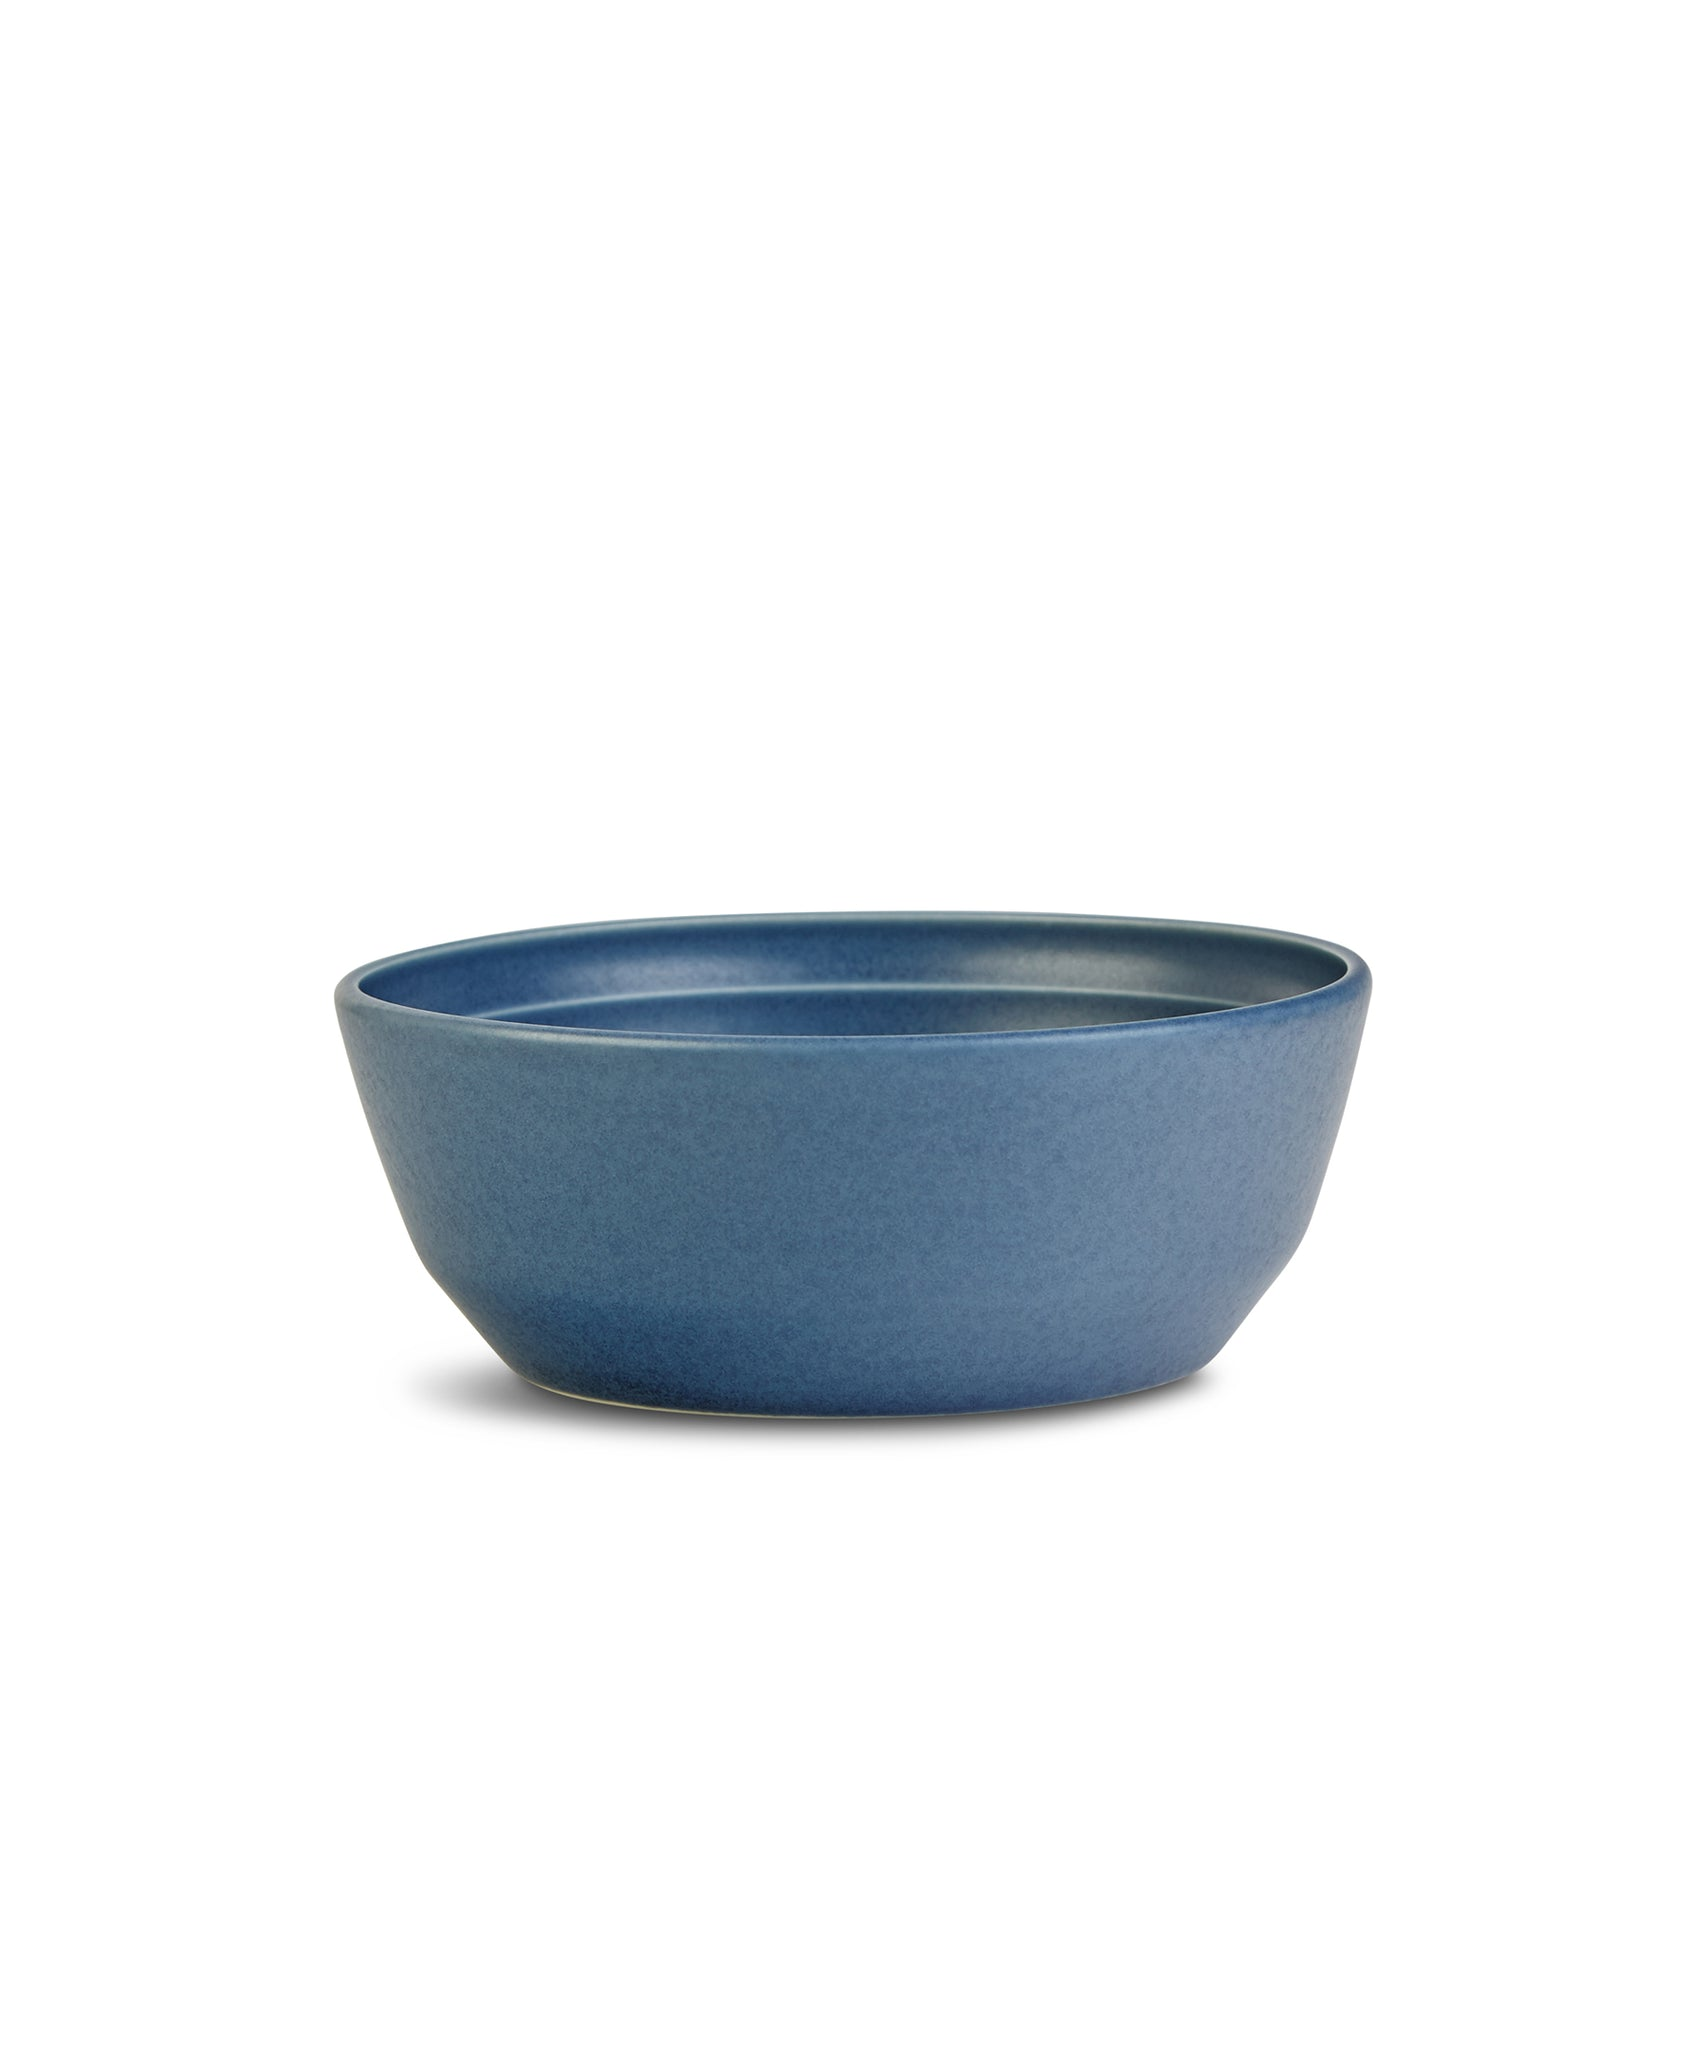 Fog Bowl 145mm (Blue) by Kinto